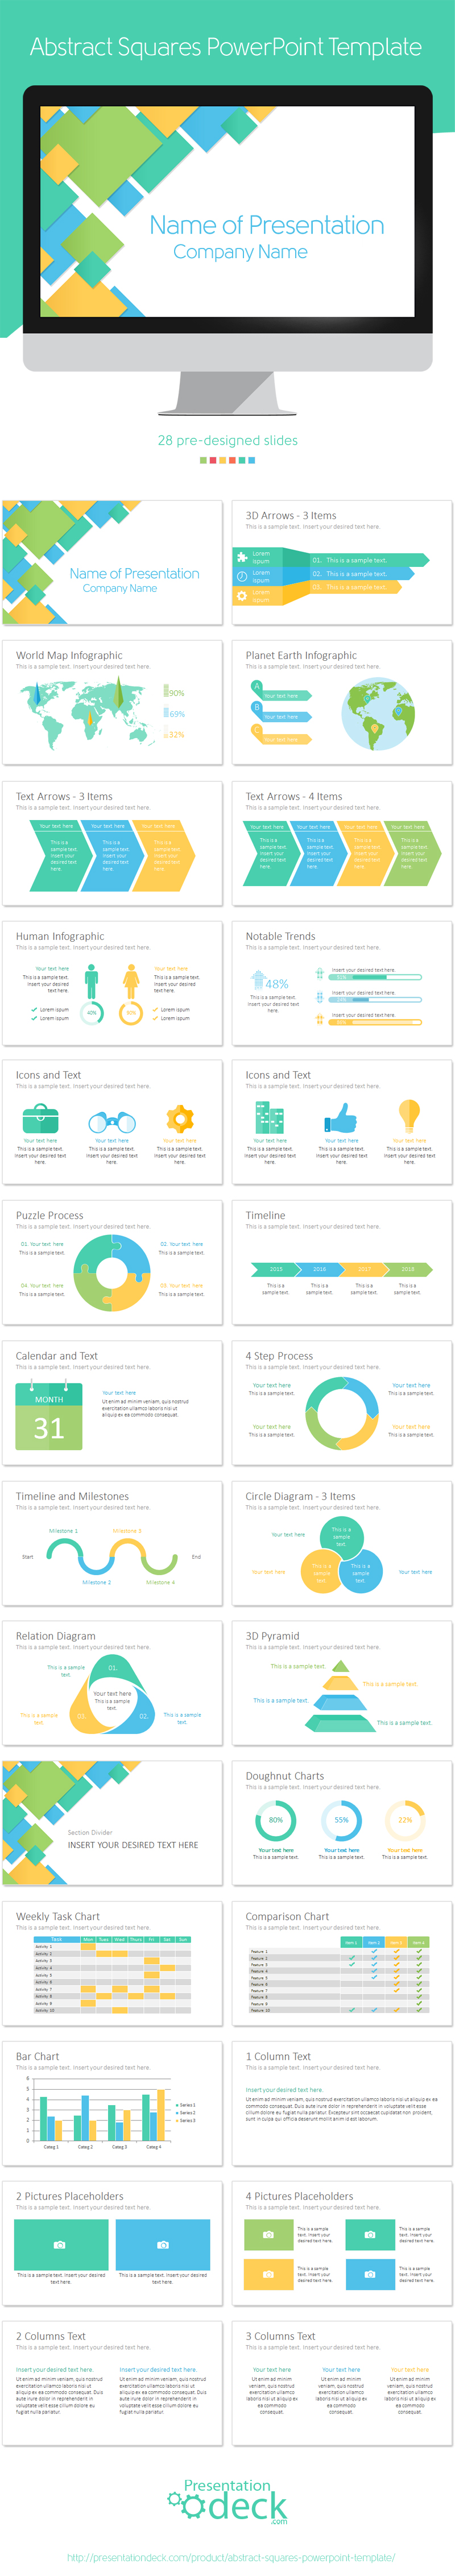 Abstract squares powerpoint template pinterest template squares abstract squares powerpoint template with 28 pre designed slides presentations powerpoint toneelgroepblik Gallery